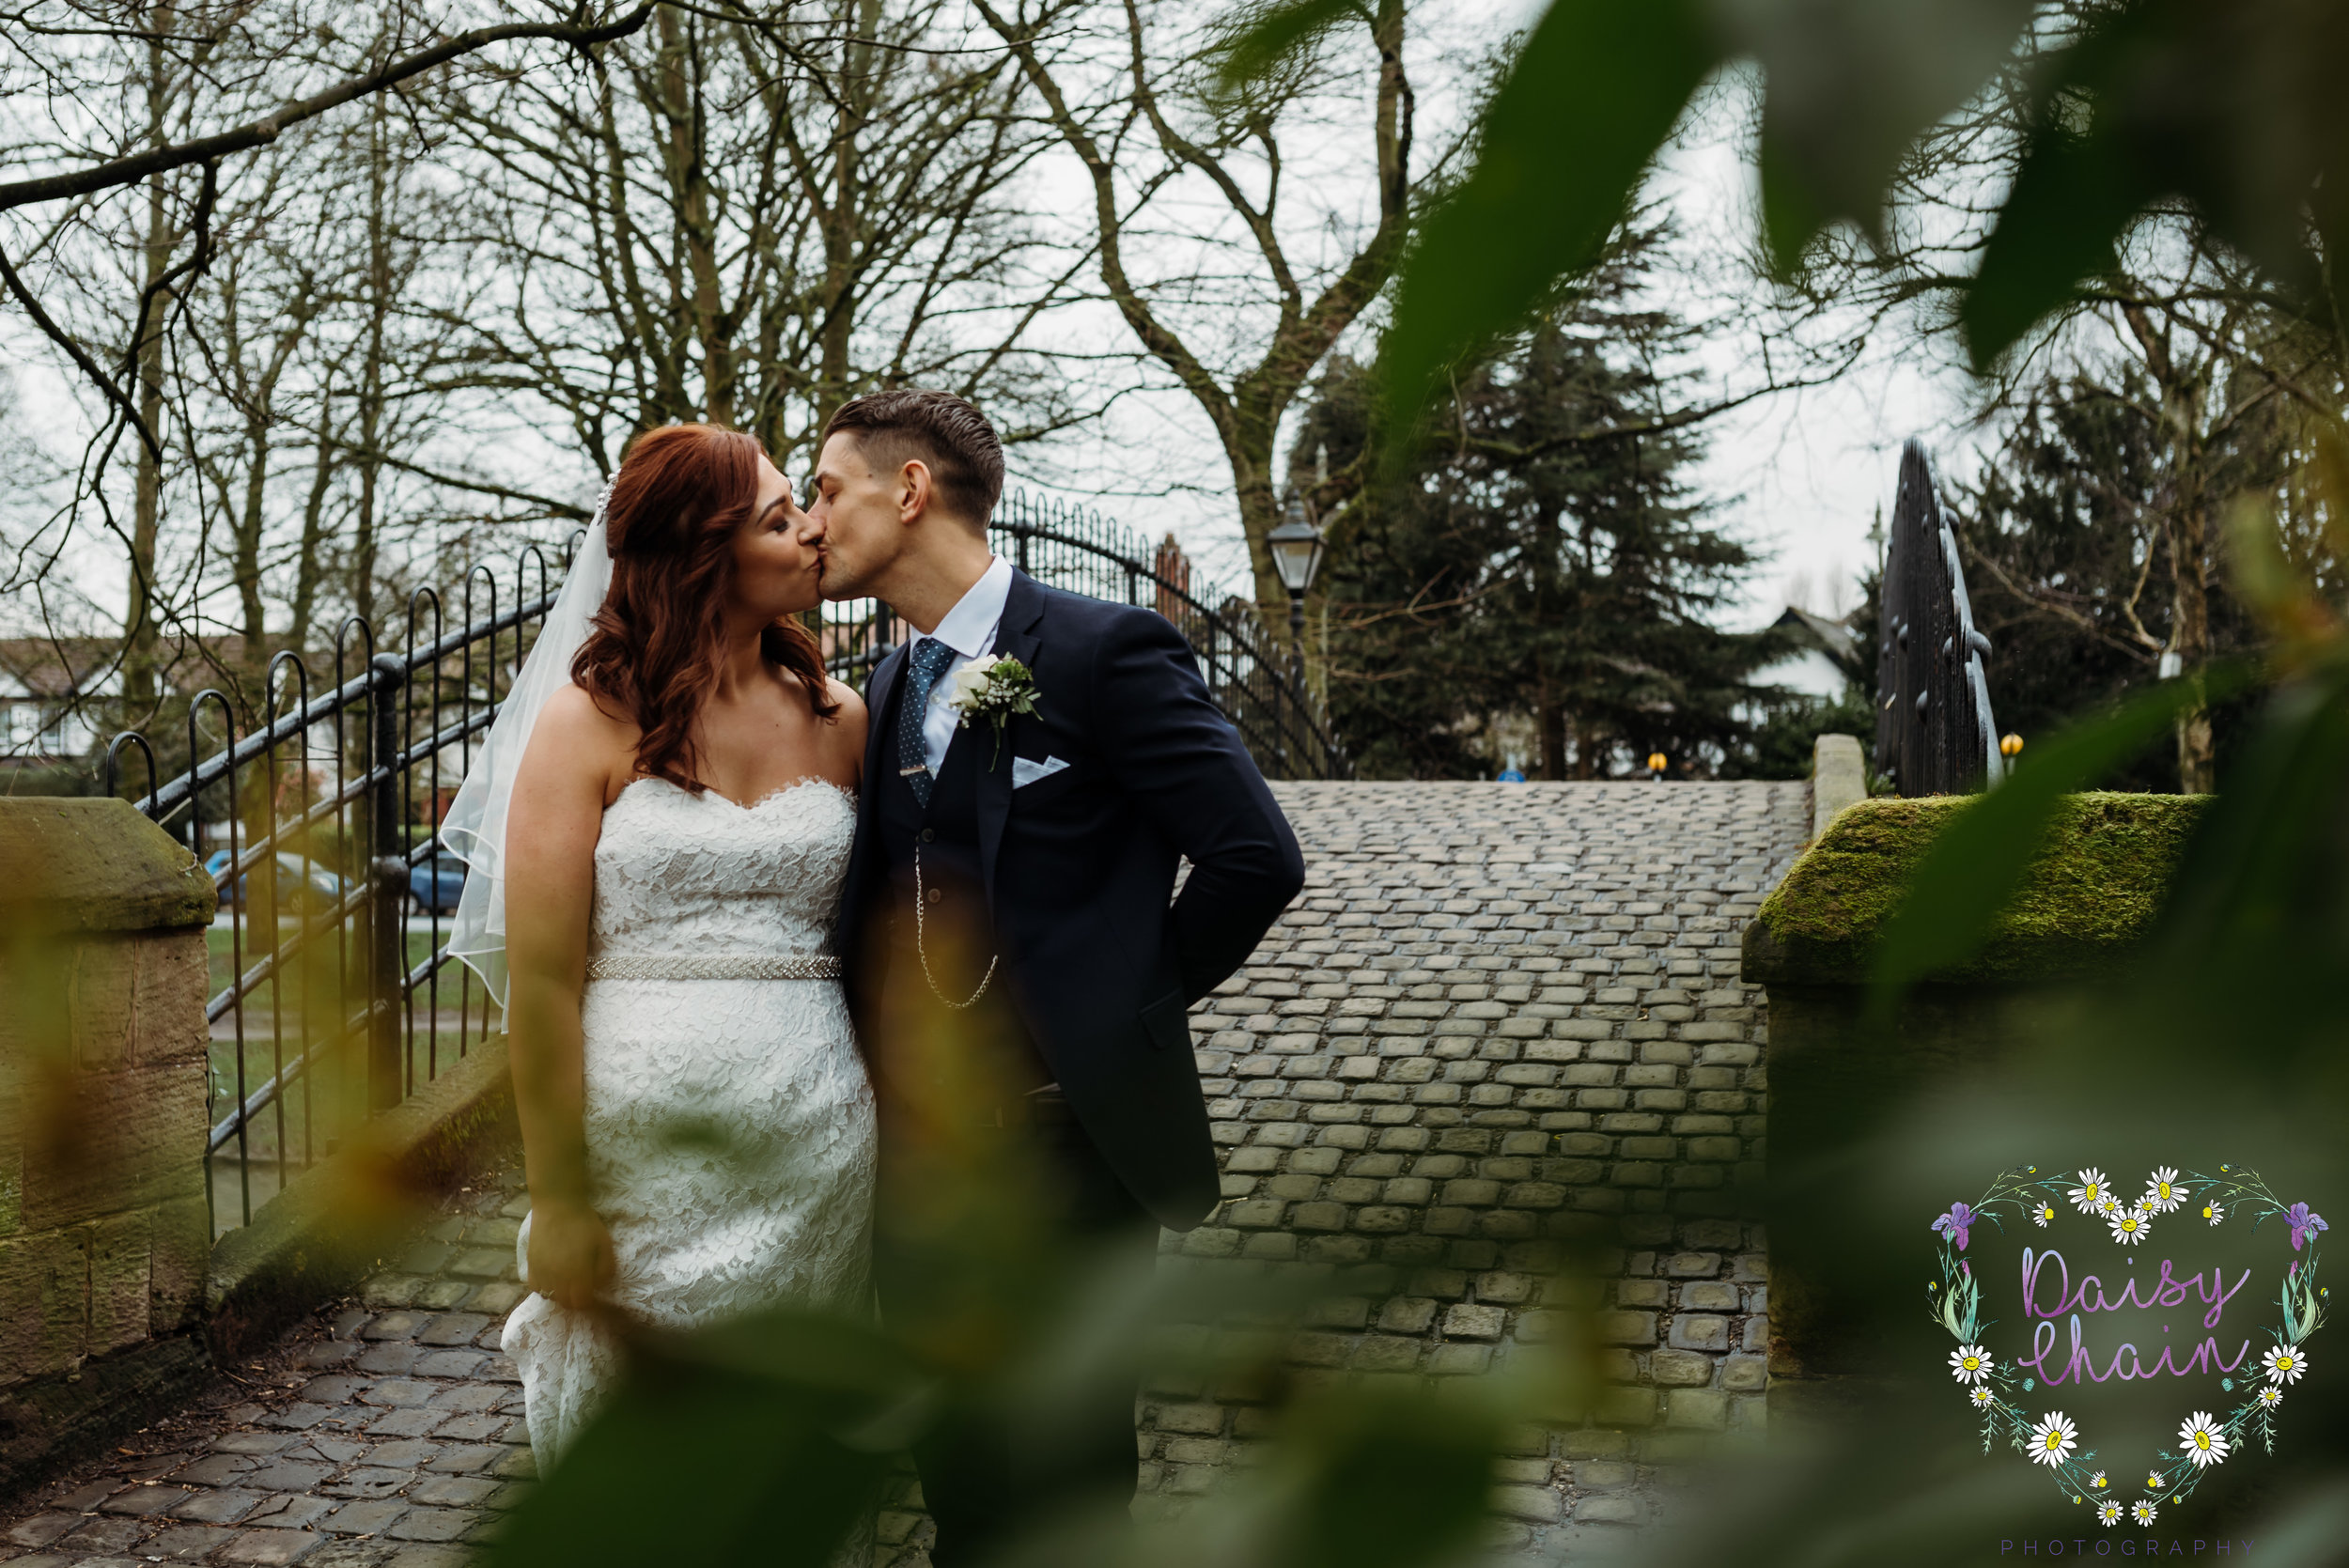 Worsley canal - wedding photographer